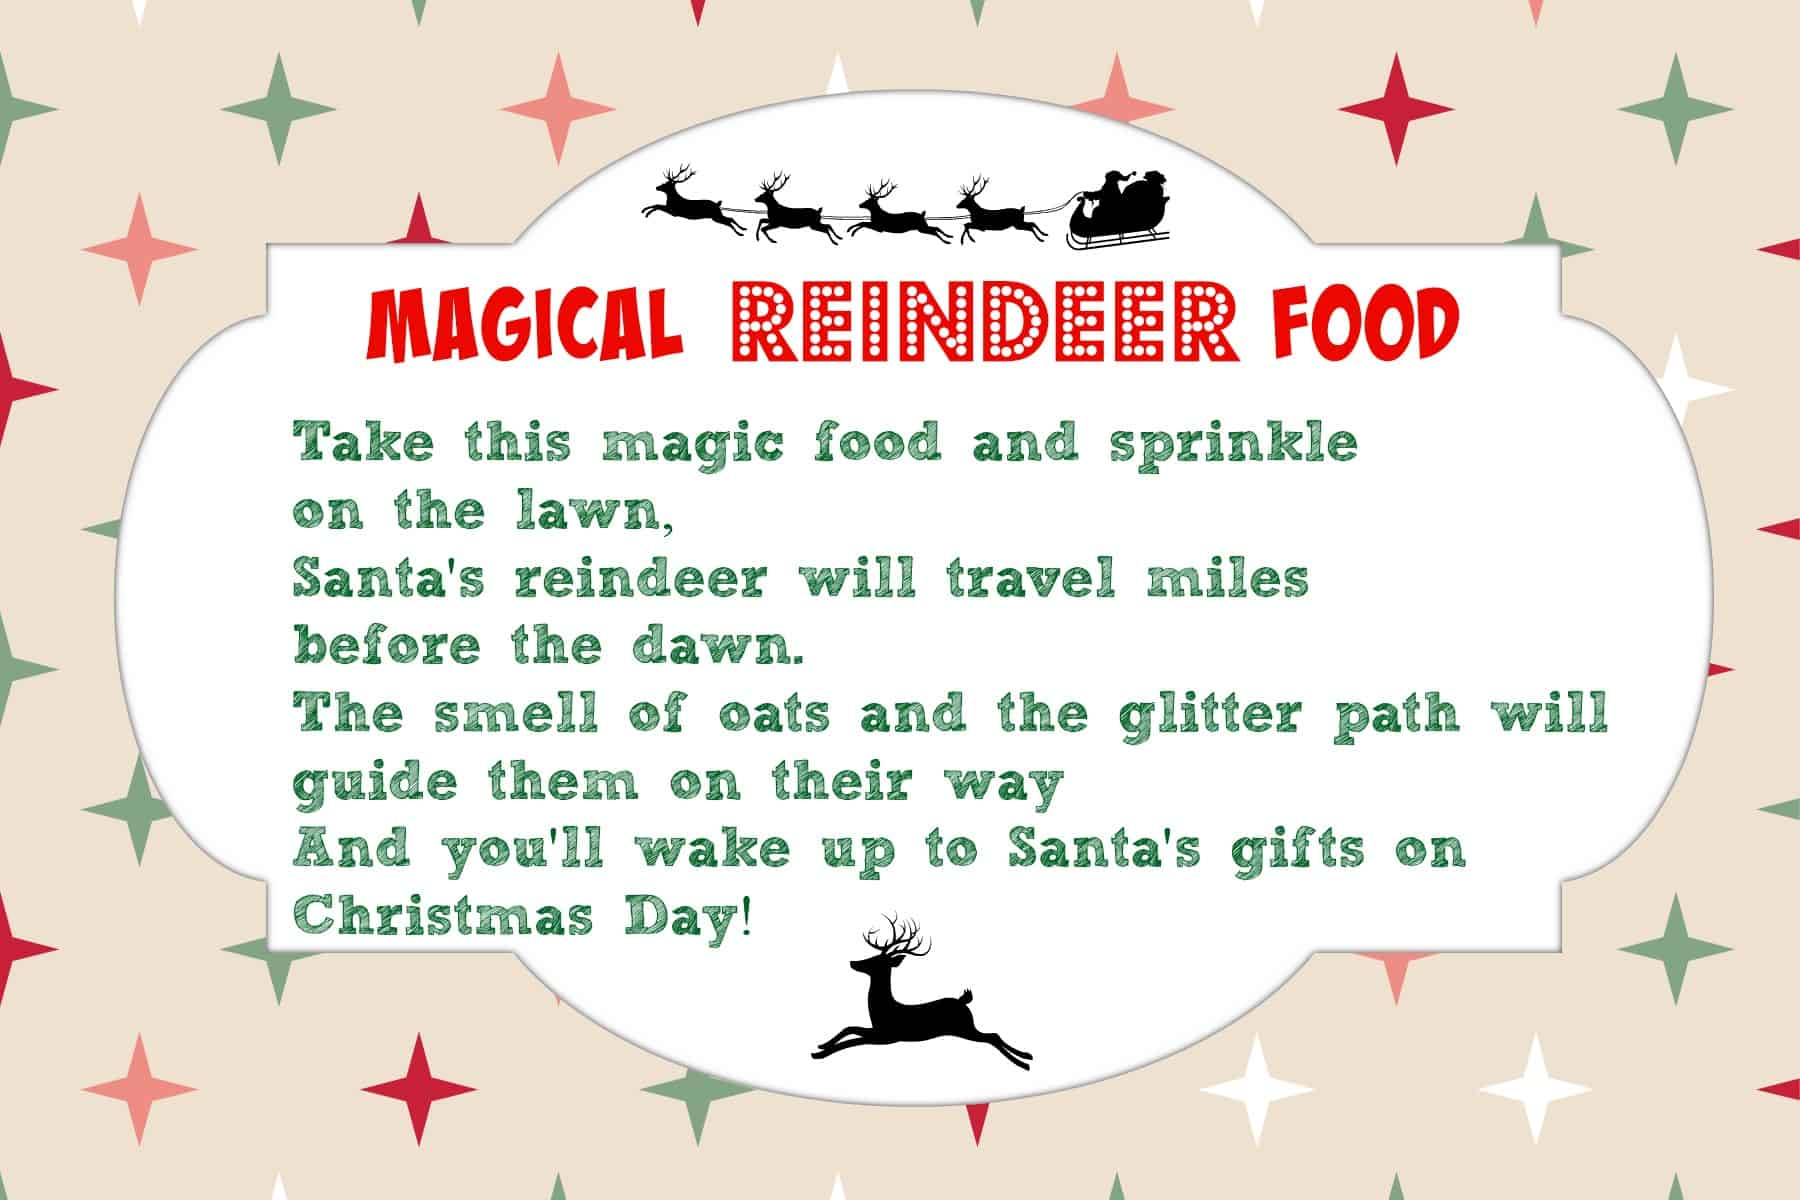 Magical Reindeer Food Recipe + Printable Tag - Mama CheapsMama Cheaps